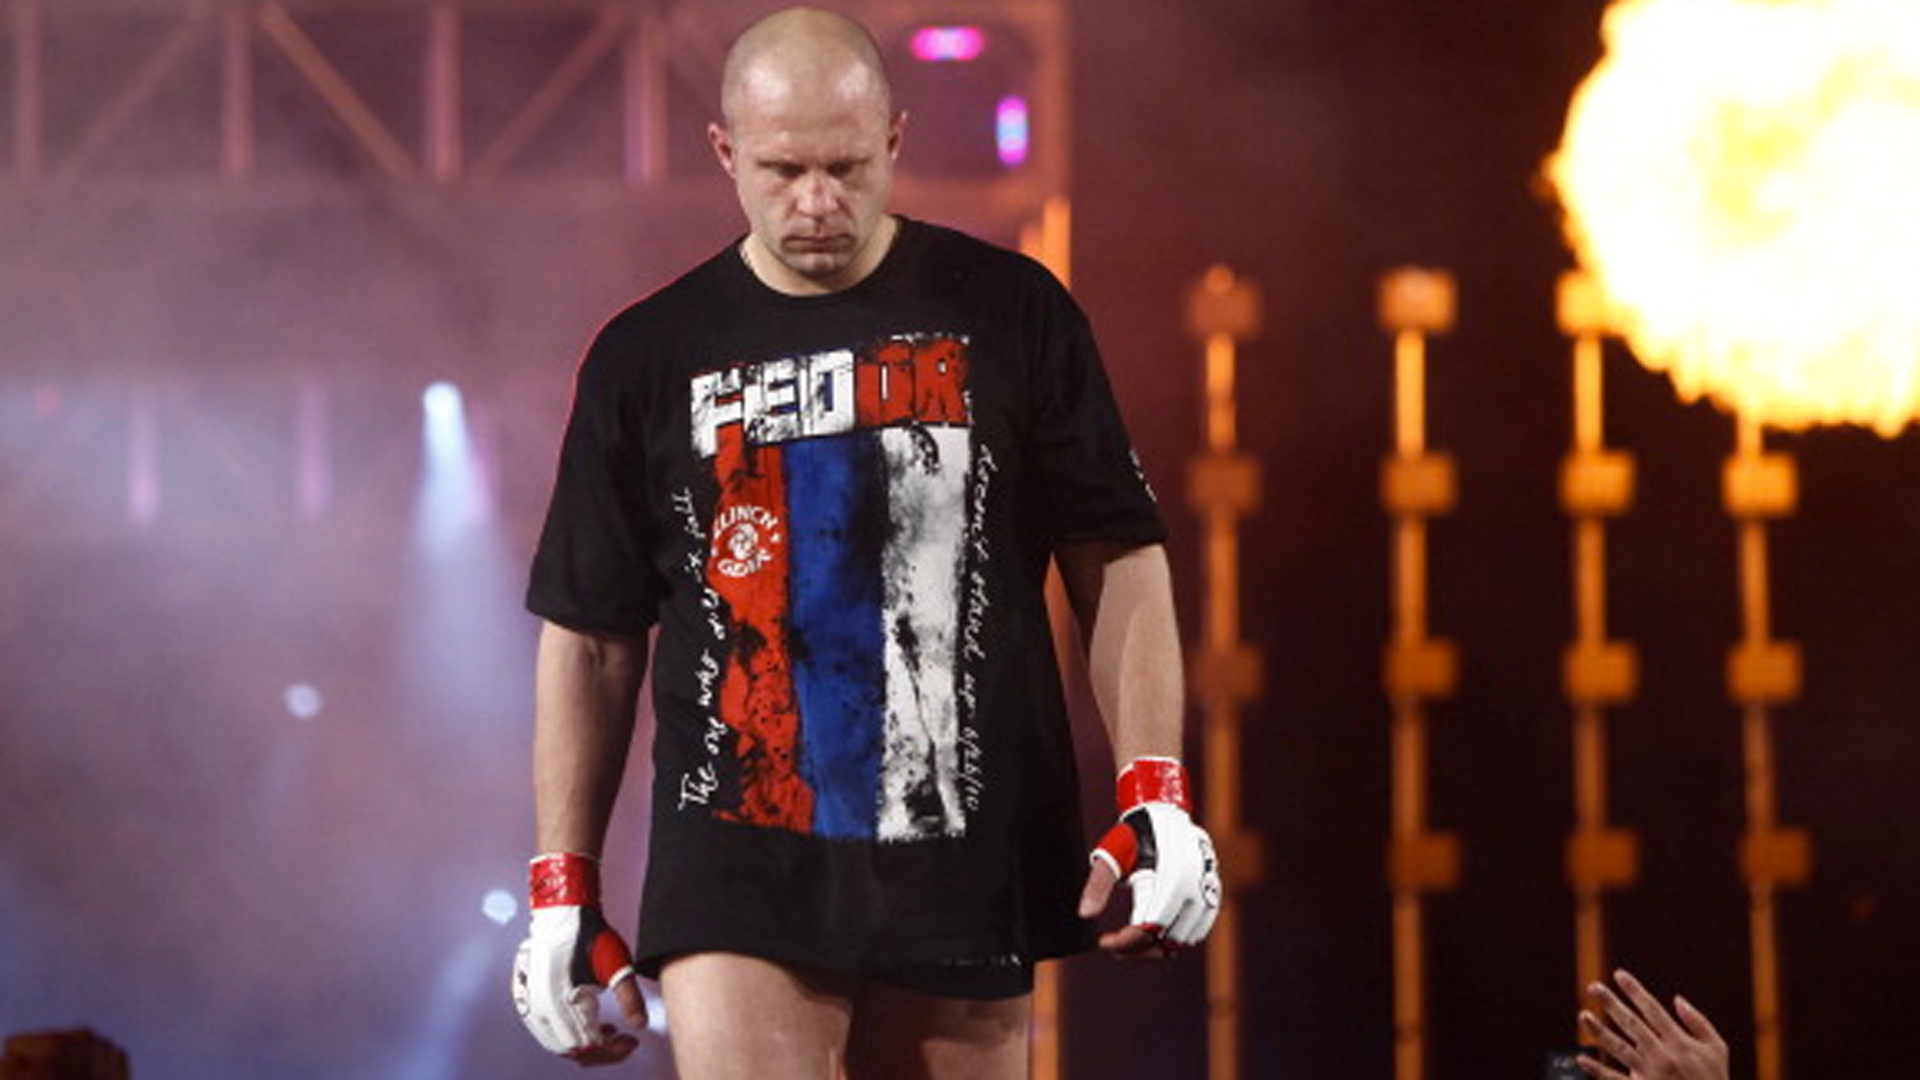 Bellator 198 Results - Fedor Emelianenko Punishes Mir, Moves on in Grand Prix